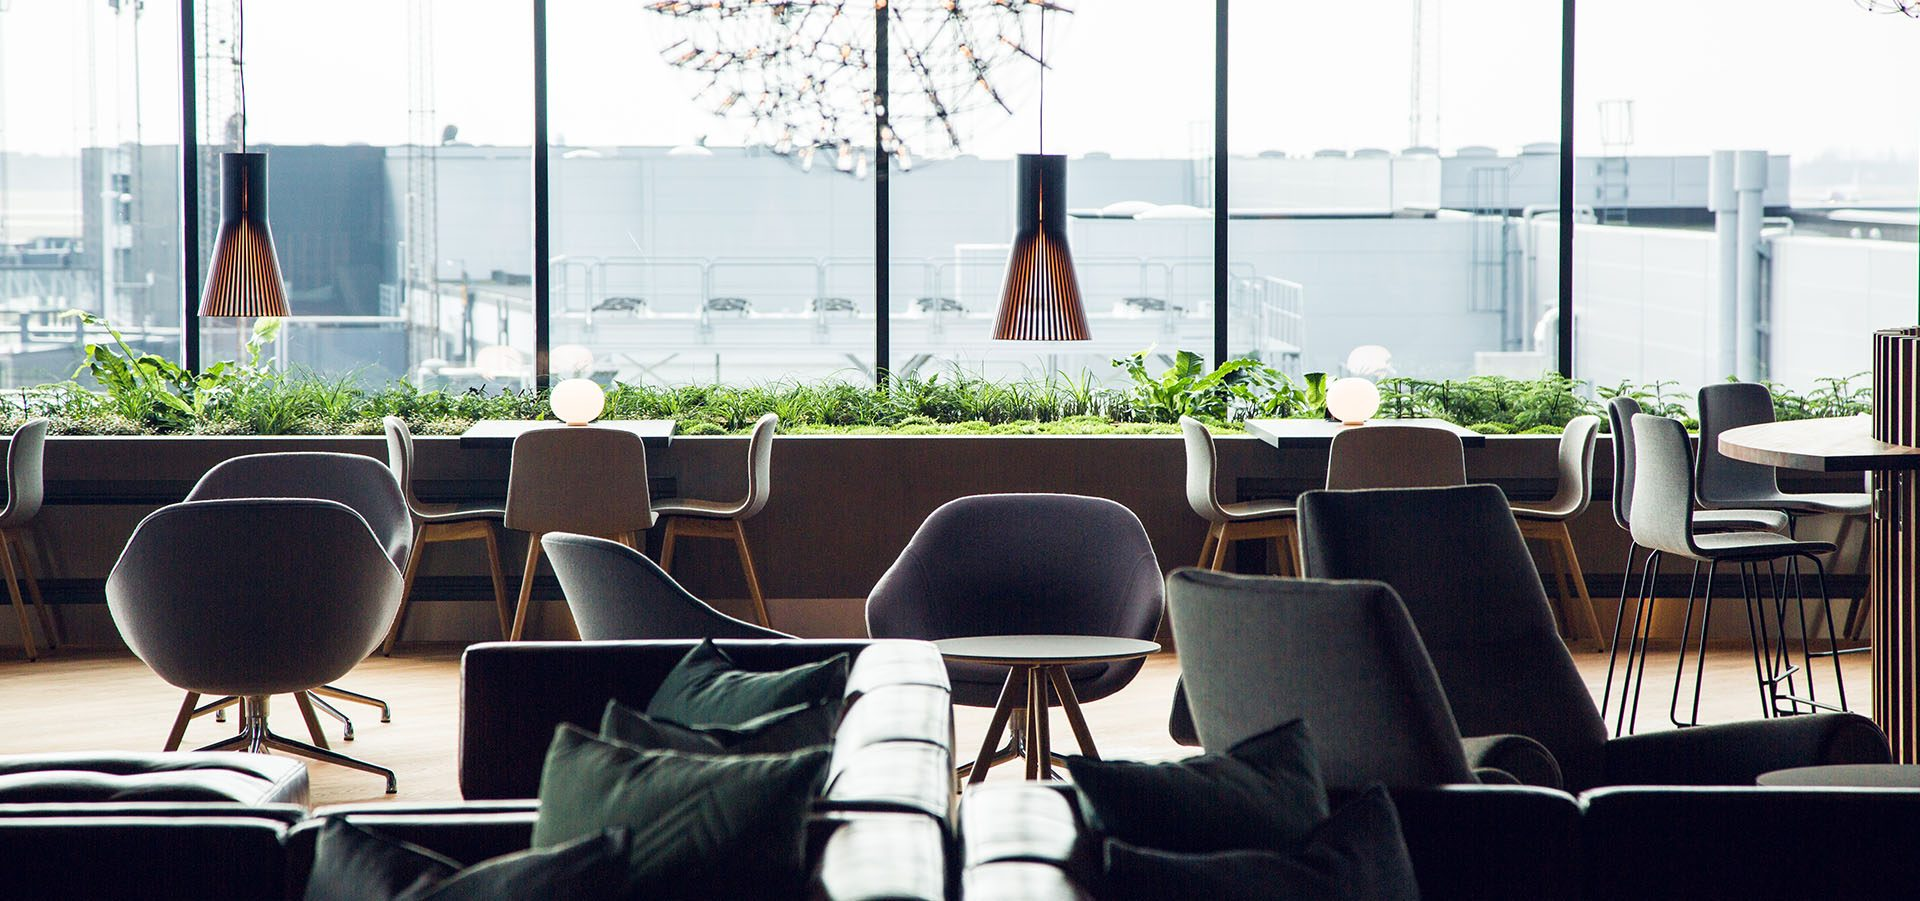 ZESO CONNECTIVITY / Eventyr Lounge